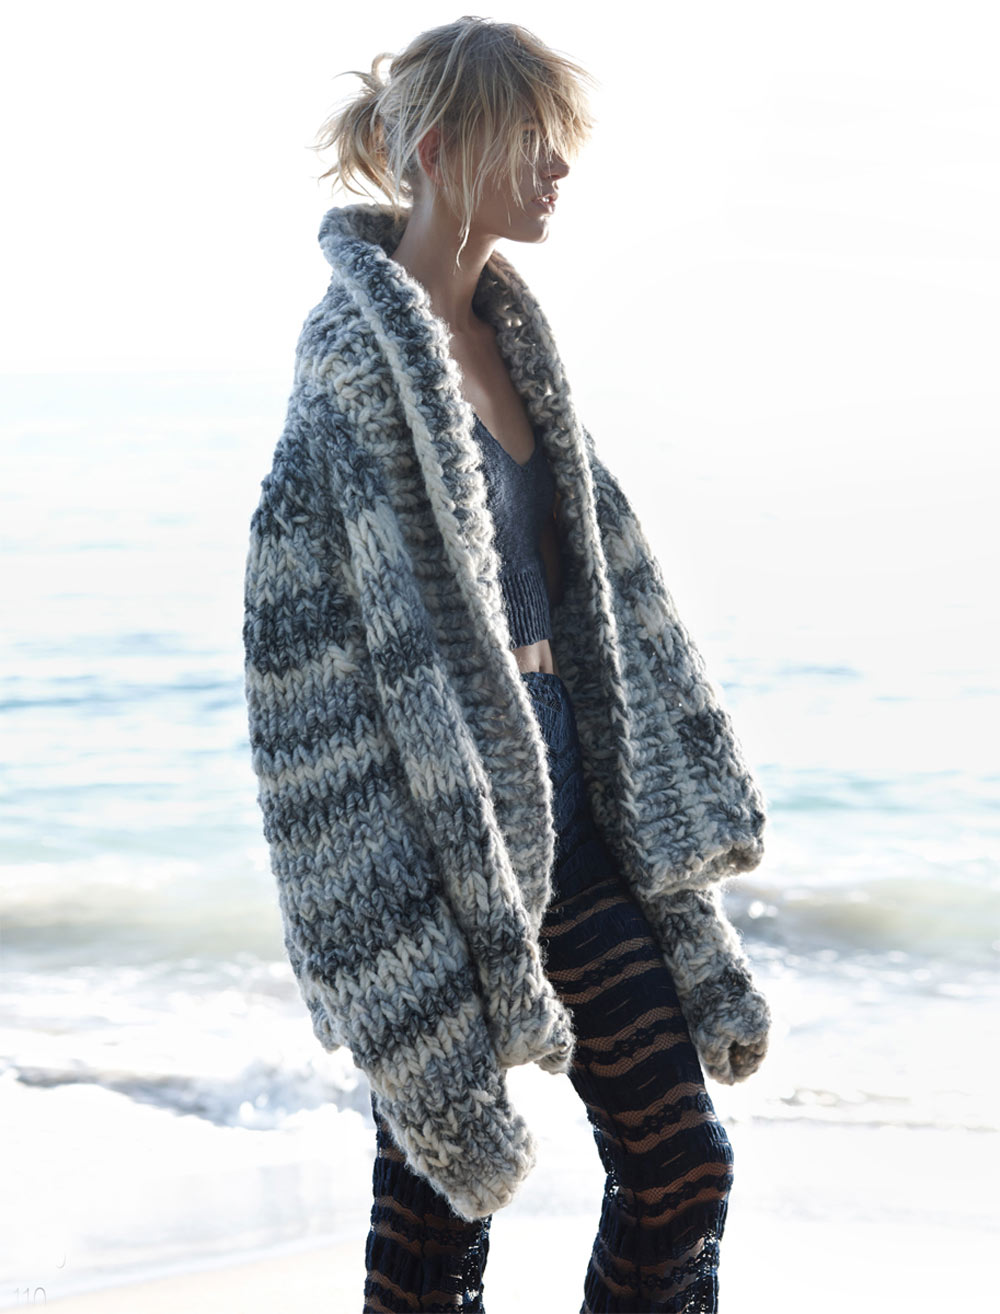 louise, mikkelsen, by, stephen, ward, elle, australia, february, 2015, Oracle, Fox, winter, beach, chunky, knit, editorial,